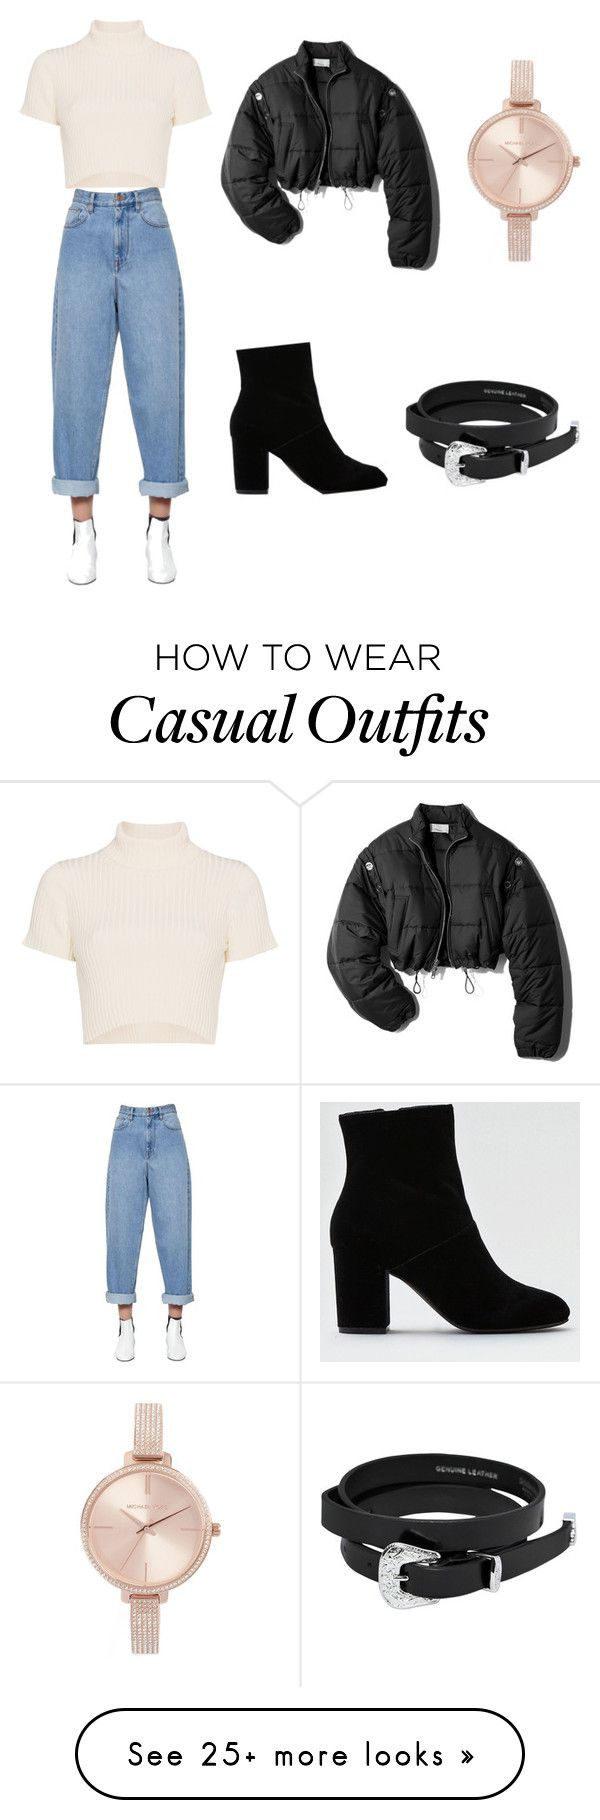 """Casual street style outfit"" by lilastrupp on Polyvore featuring Staud, Étoile Isabel Marant, American Eagle Outfitters, Dsquared2, Michael Kors and 3.1 Phillip Lim"